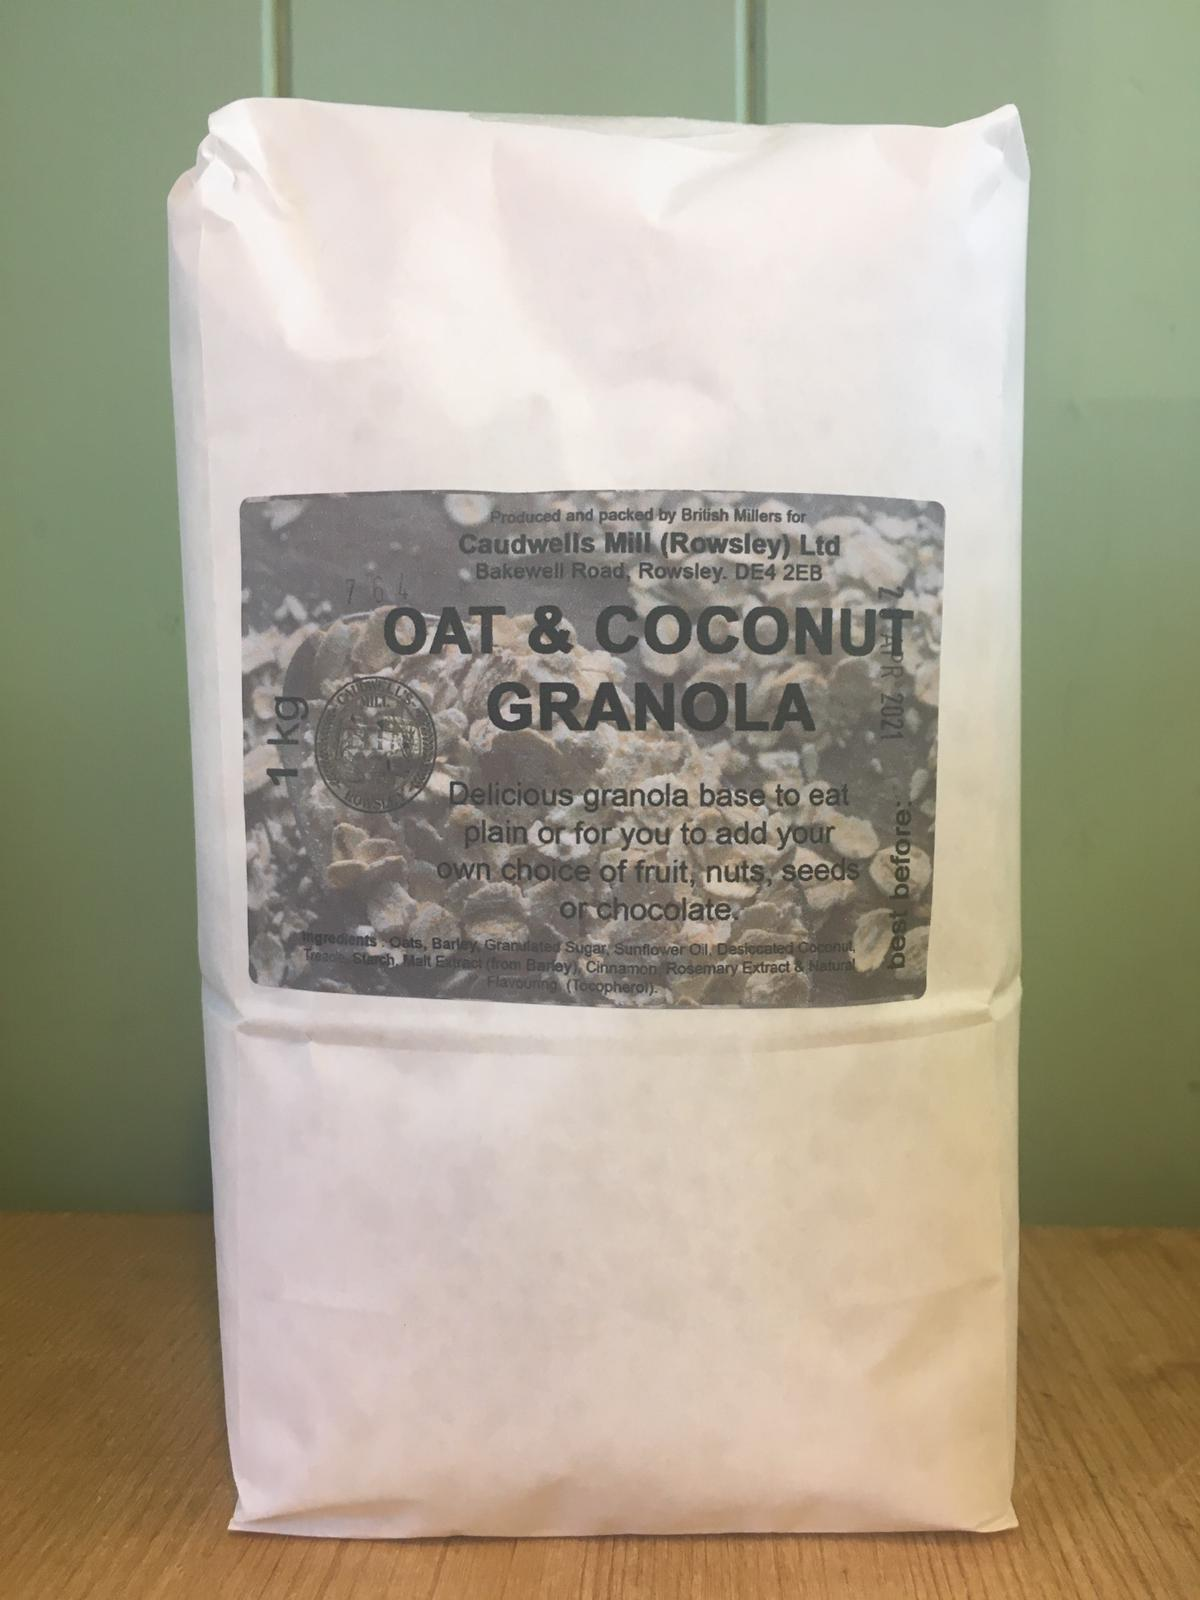 Caudwell's Mill - Oat & Coconut Granola 1kg